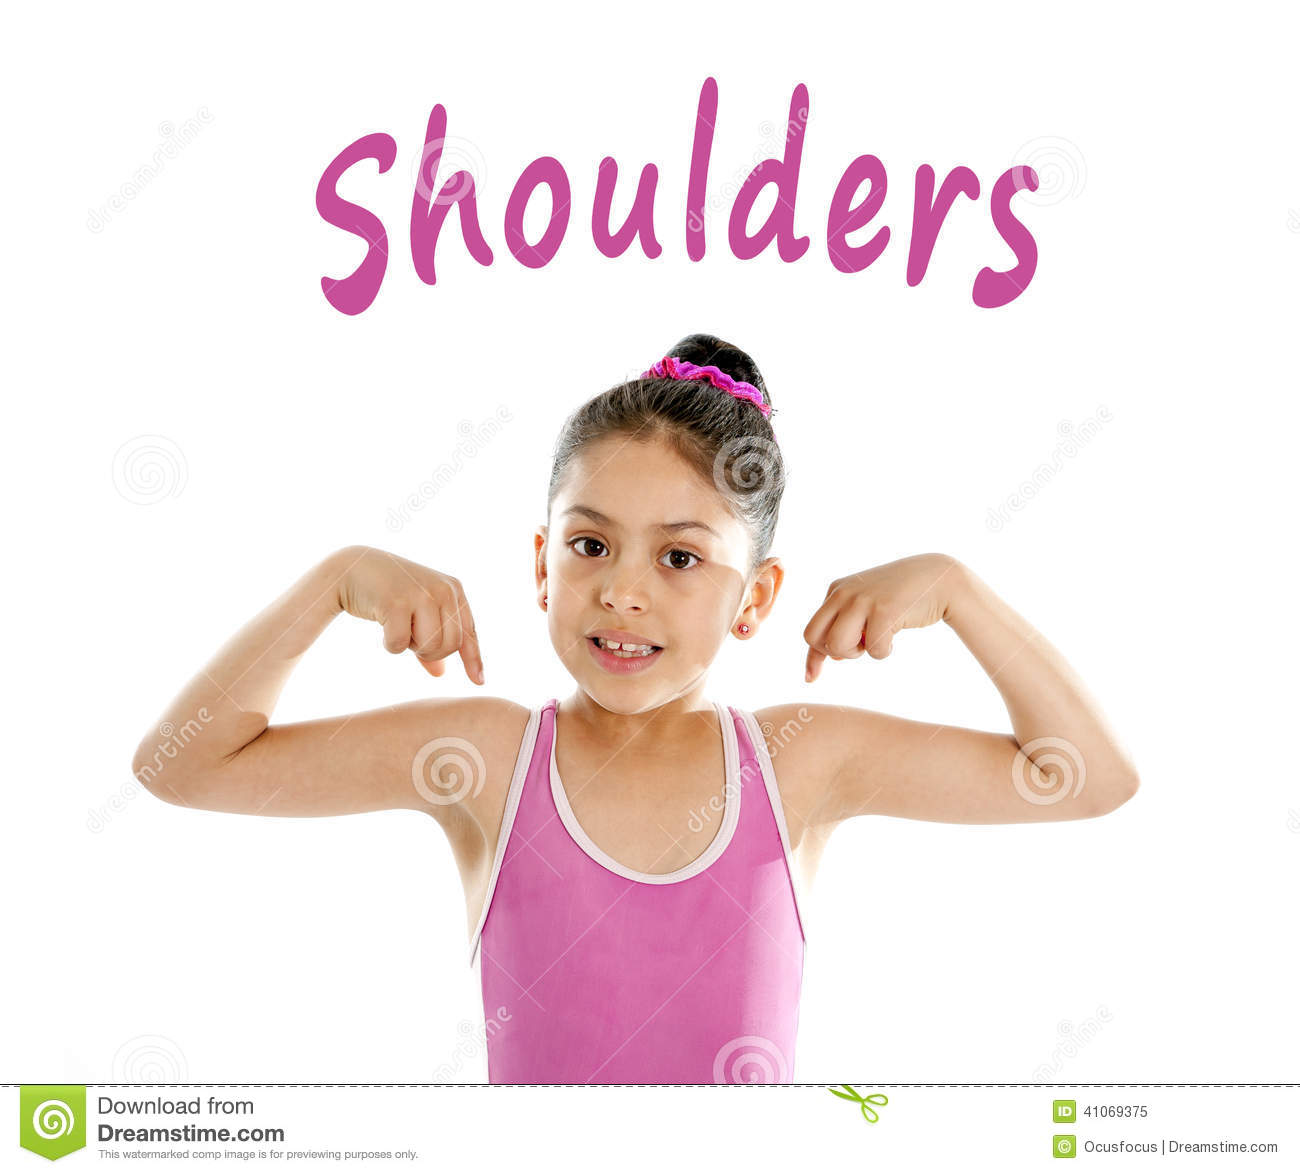 School card of girl pointing at her shoulder isolated on white background